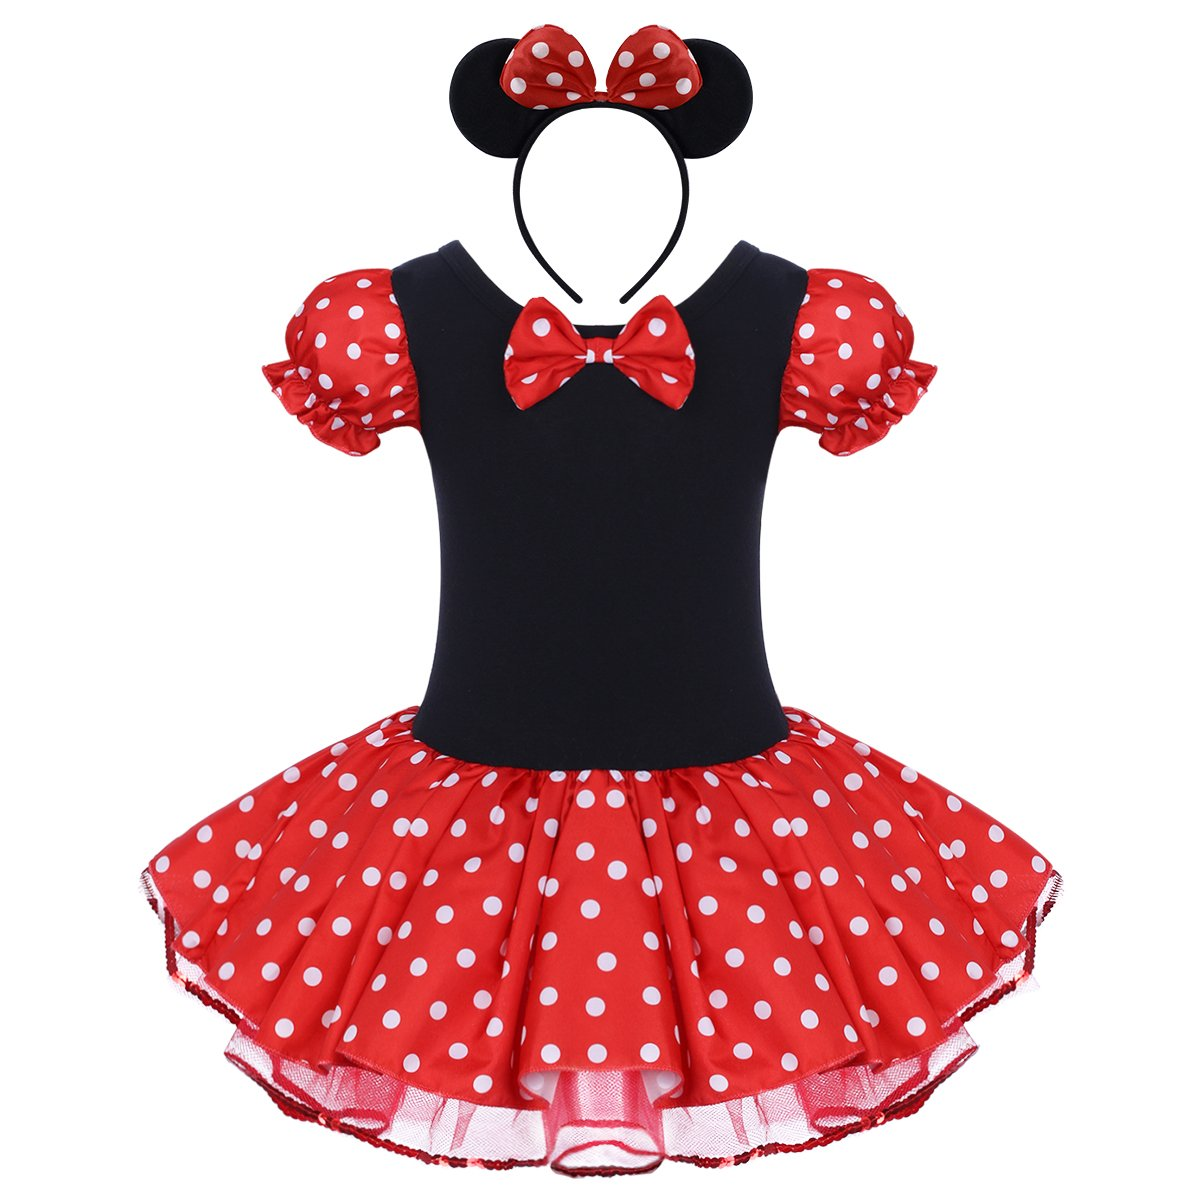 Kid Girl Minnie Costume Tutu Dress Ear Headband Outfit Birthday Party Princess Performance Halloween Fancy Dress Up # Red 4-5 Years